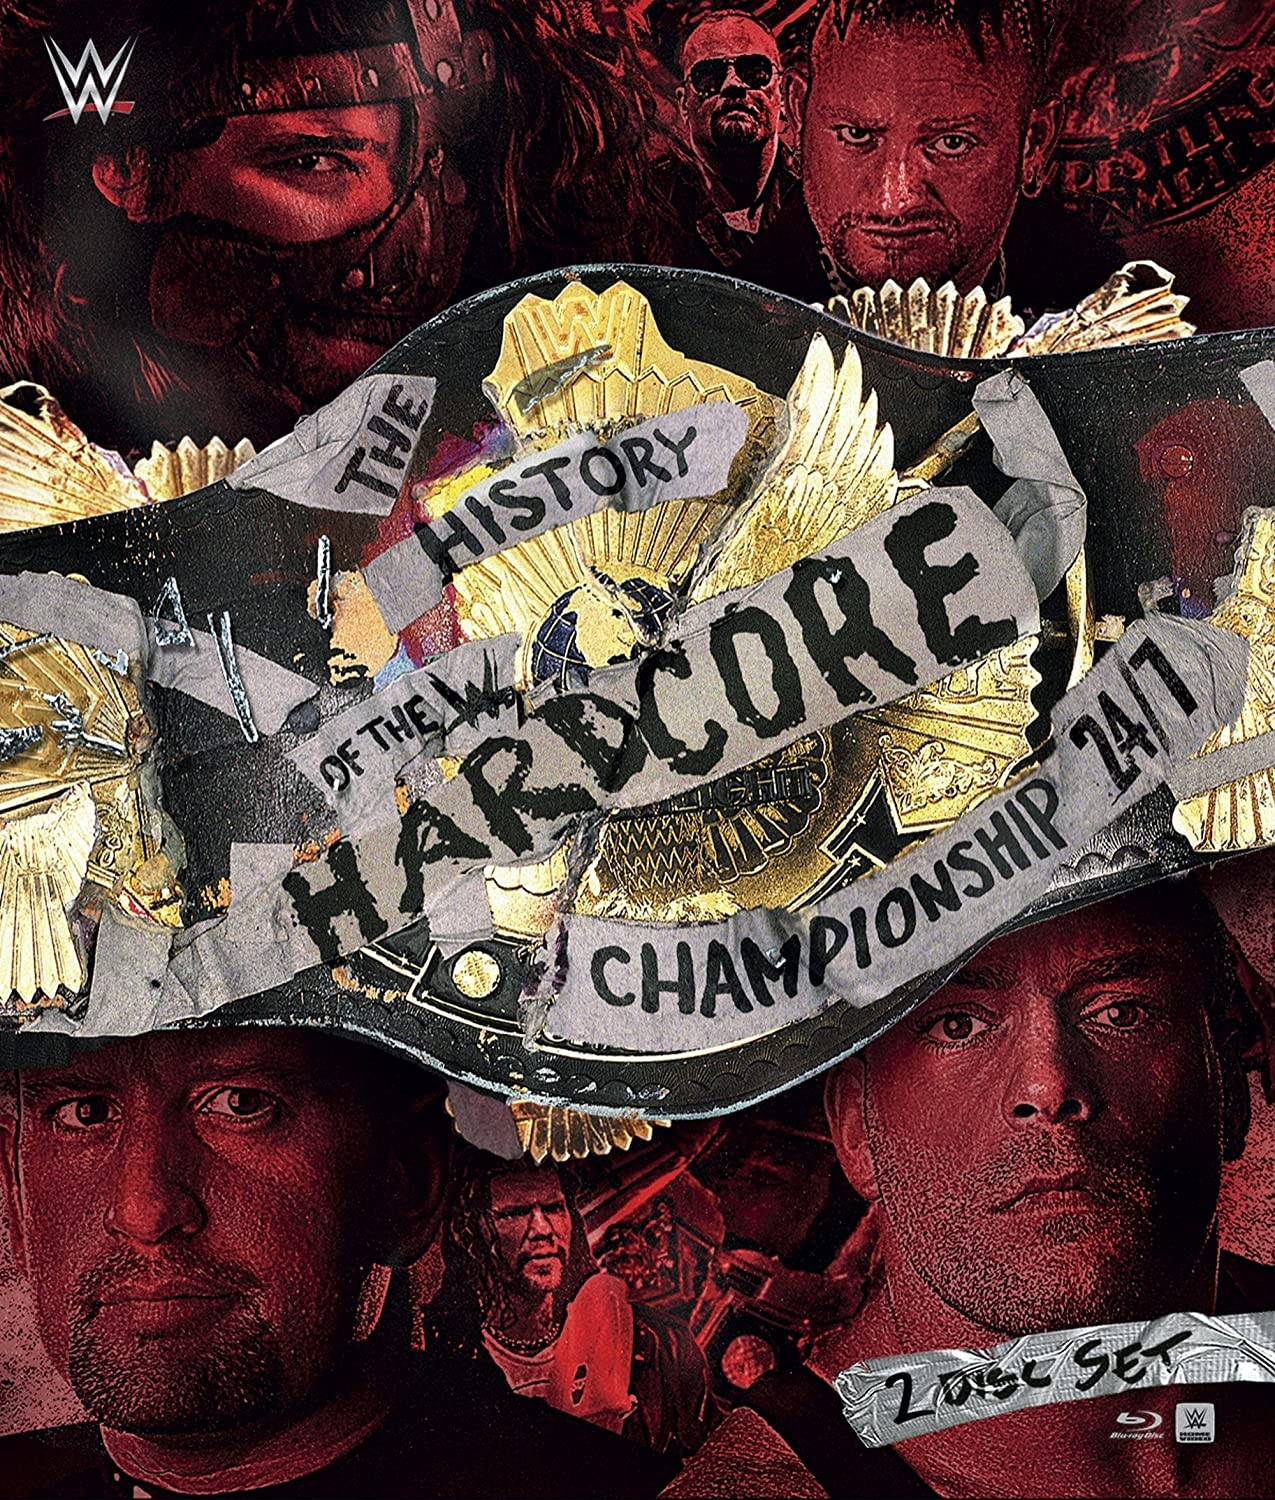 Wwe: History of Wwe Hardcore Championship: 24/7 [Blu-ray] [Import]<p>